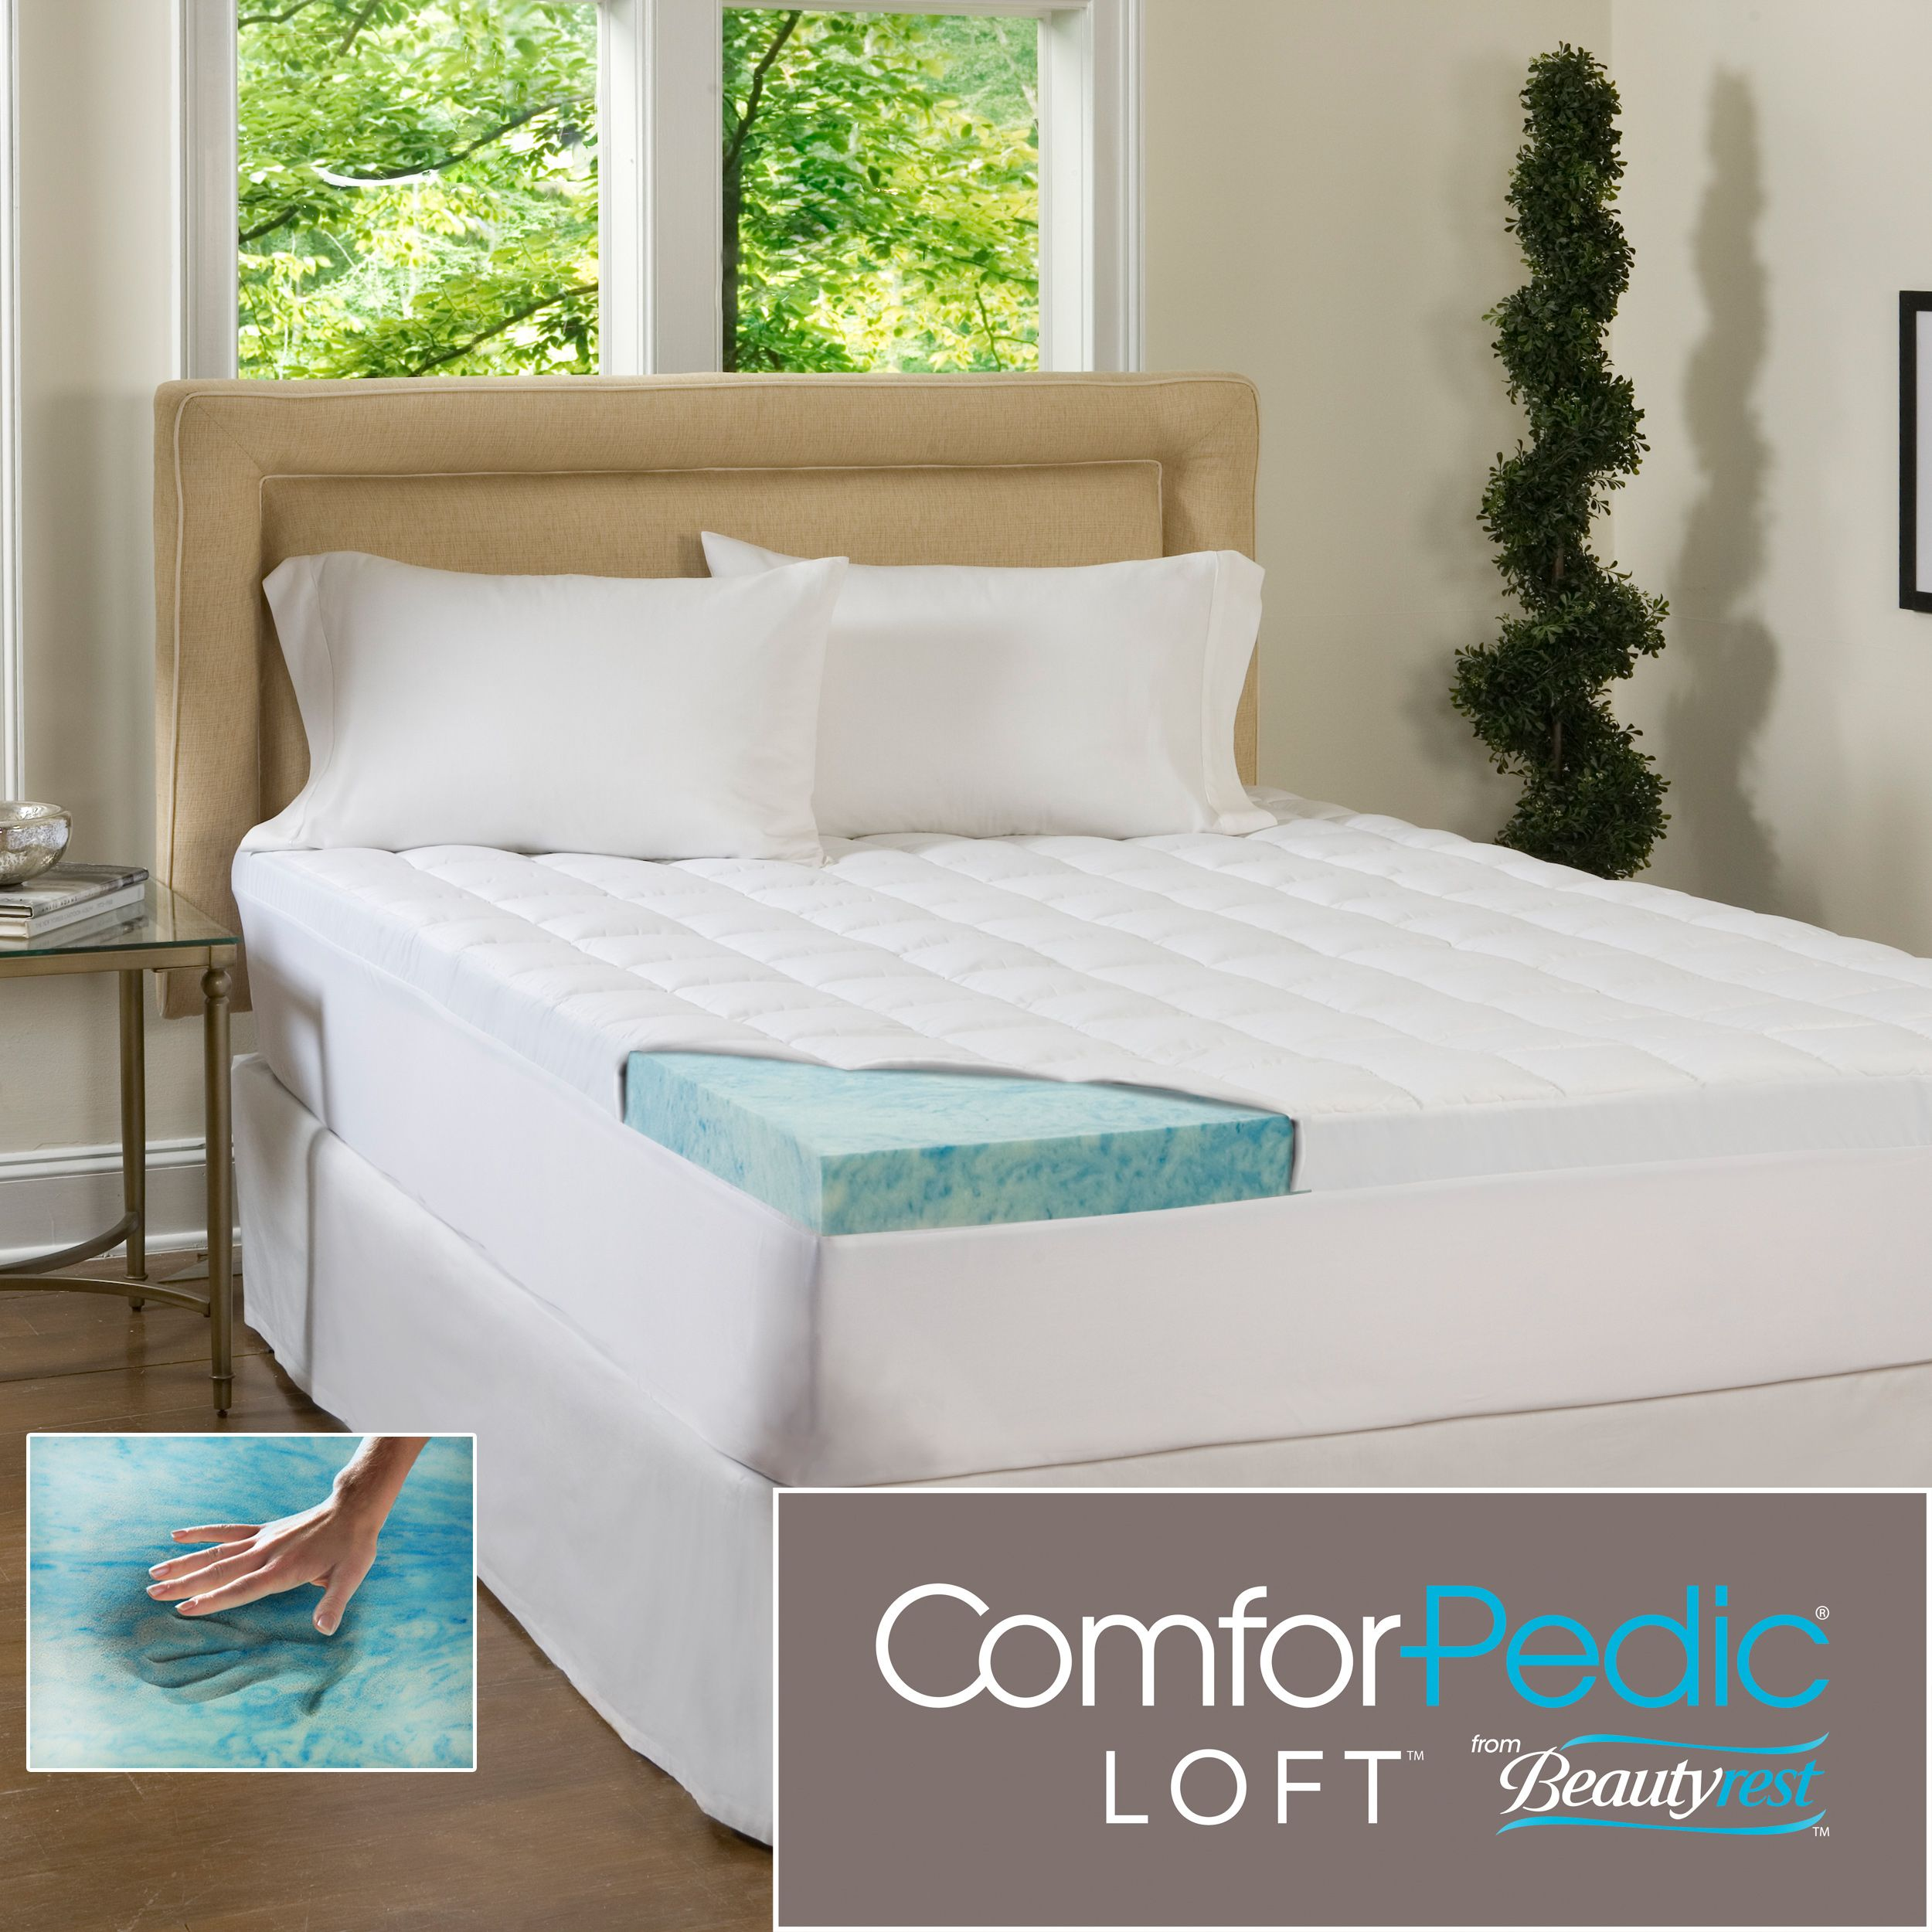 Comforpedic Loft From Beautyrest 4 Inch Supreme Gel Memory